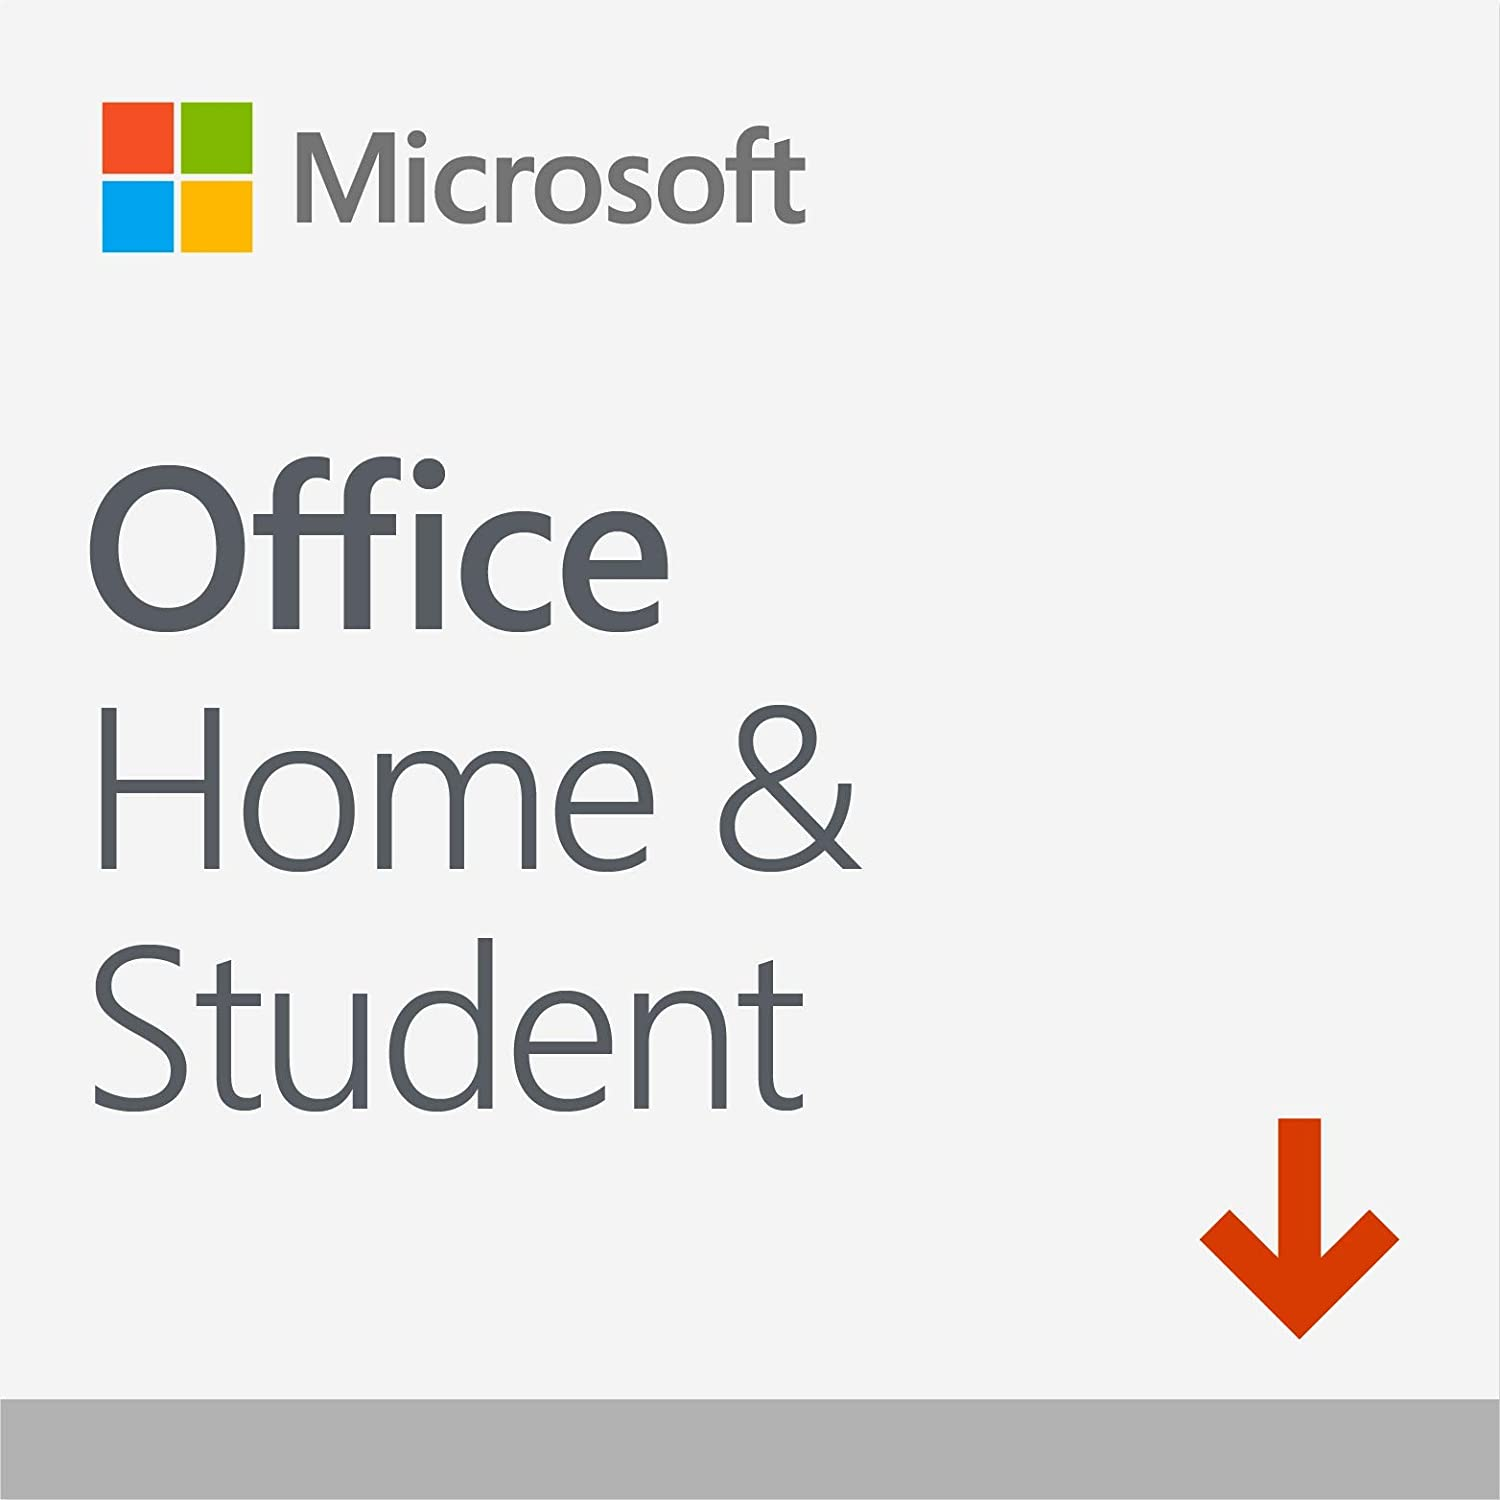 Microsoft Office Home Student 2019 One Time Purchase 1 Pc